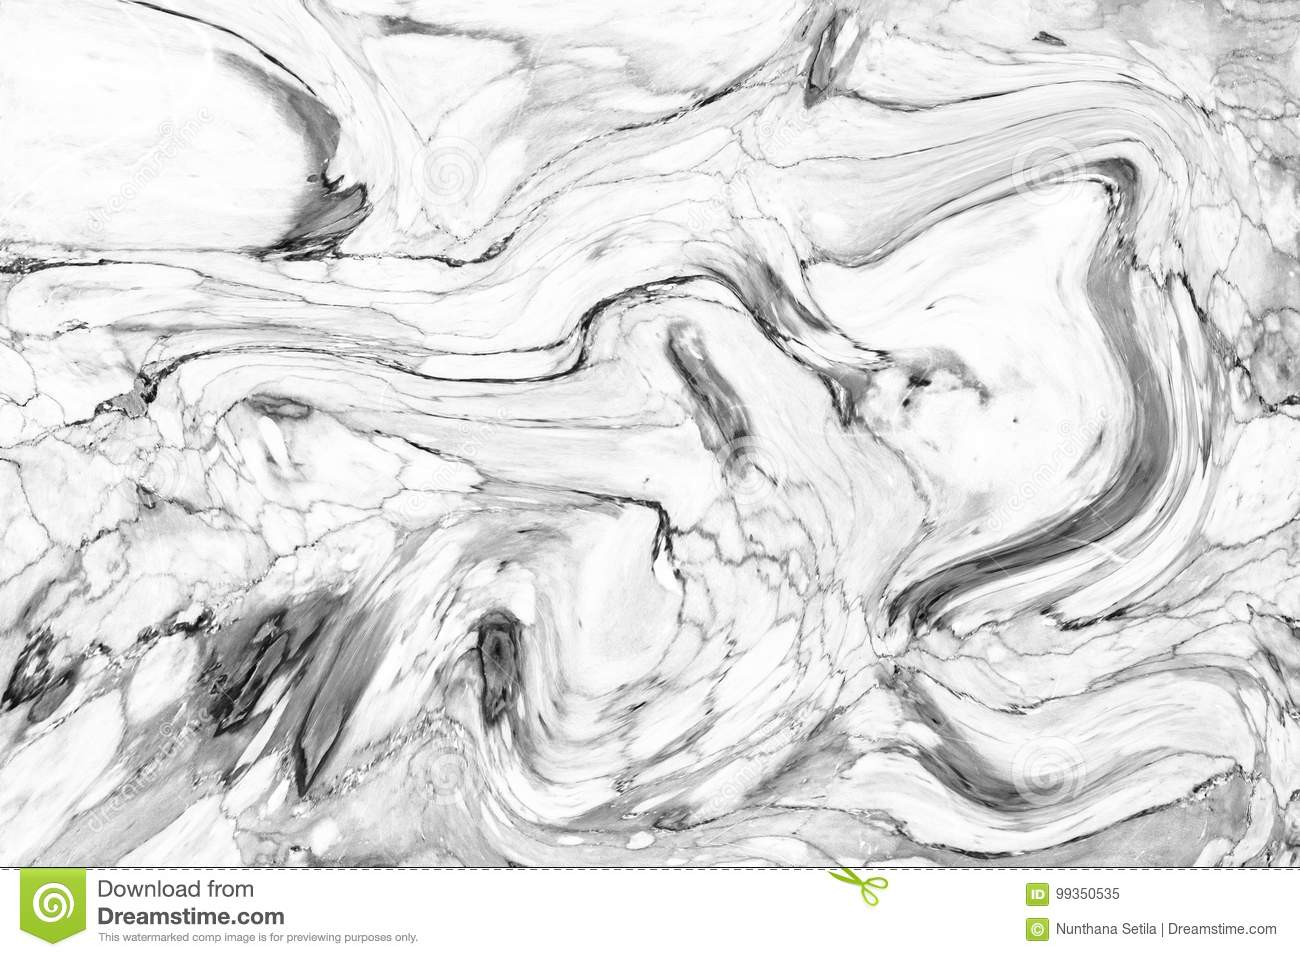 Most Inspiring Wallpaper Marble High Definition - abstract-wave-pattern-white-gray-marble-ink-texture-background-wallpaper-skin-wall-tile-interior-design-high-definition-99350535  Best Photo Reference_41885.jpg